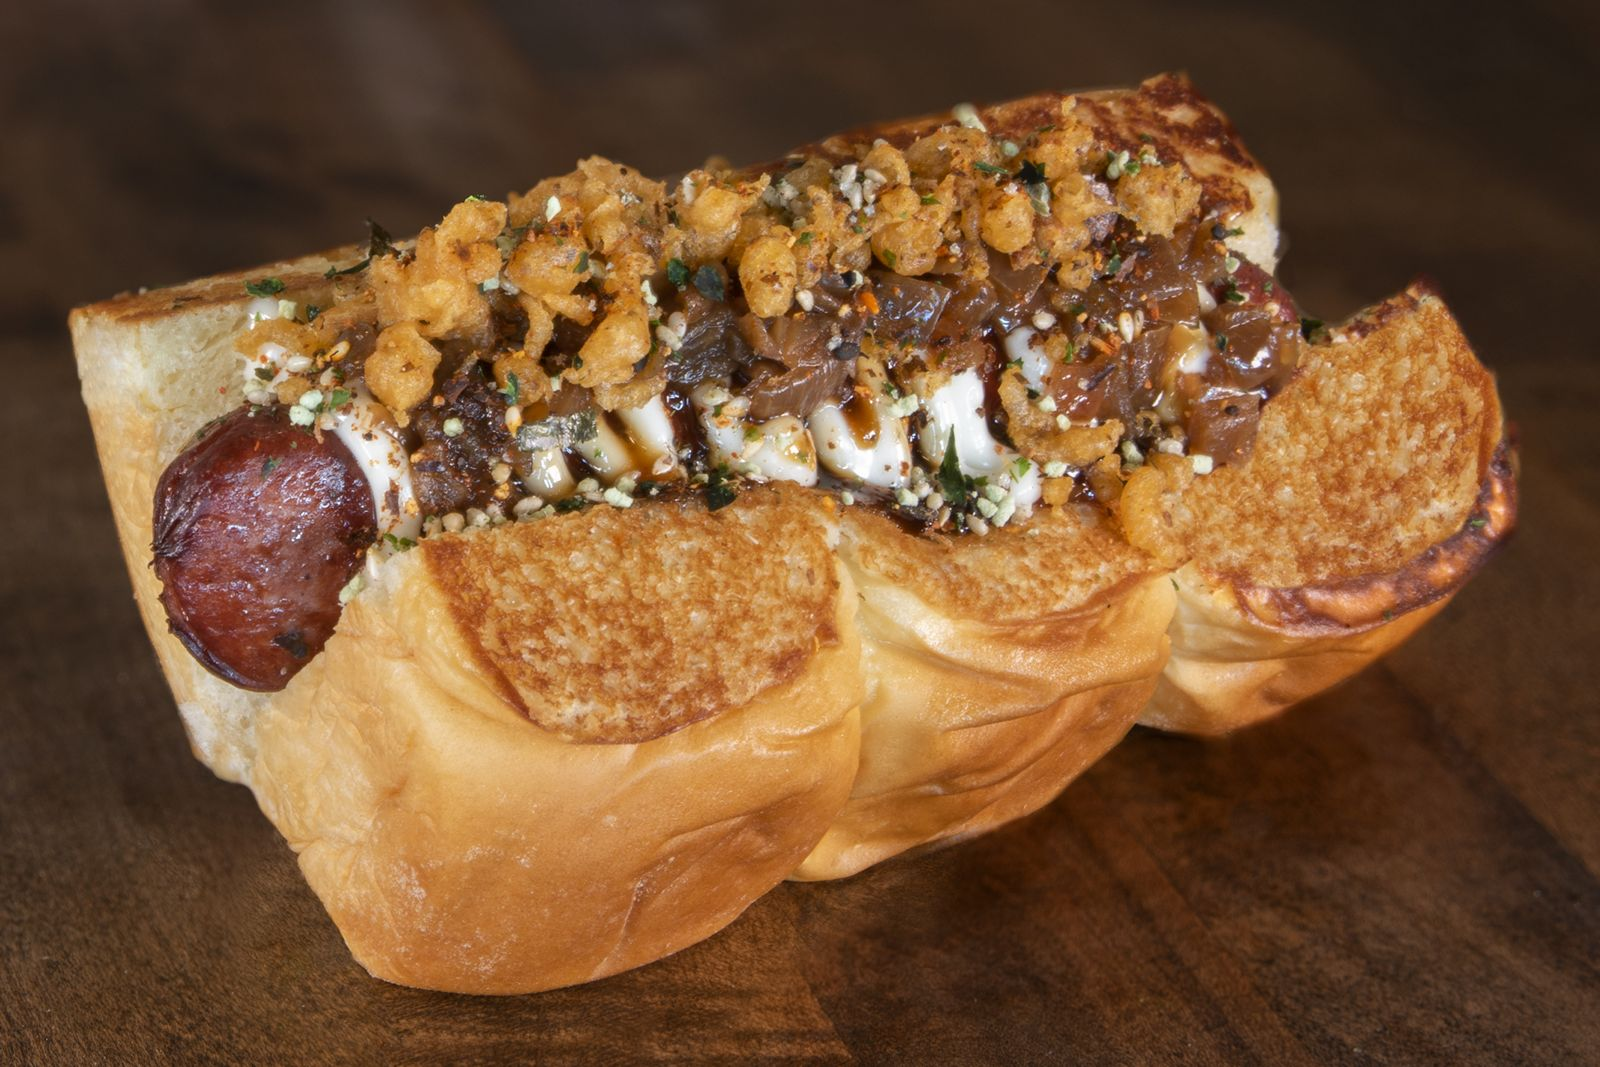 Mr. Miyagi - a deep-fried beef dog topped with mayo, teriyaki sauce, caramelized onions, tempura crumbles and wasabi furikake, served on grilled King's Hawaiian rolls.